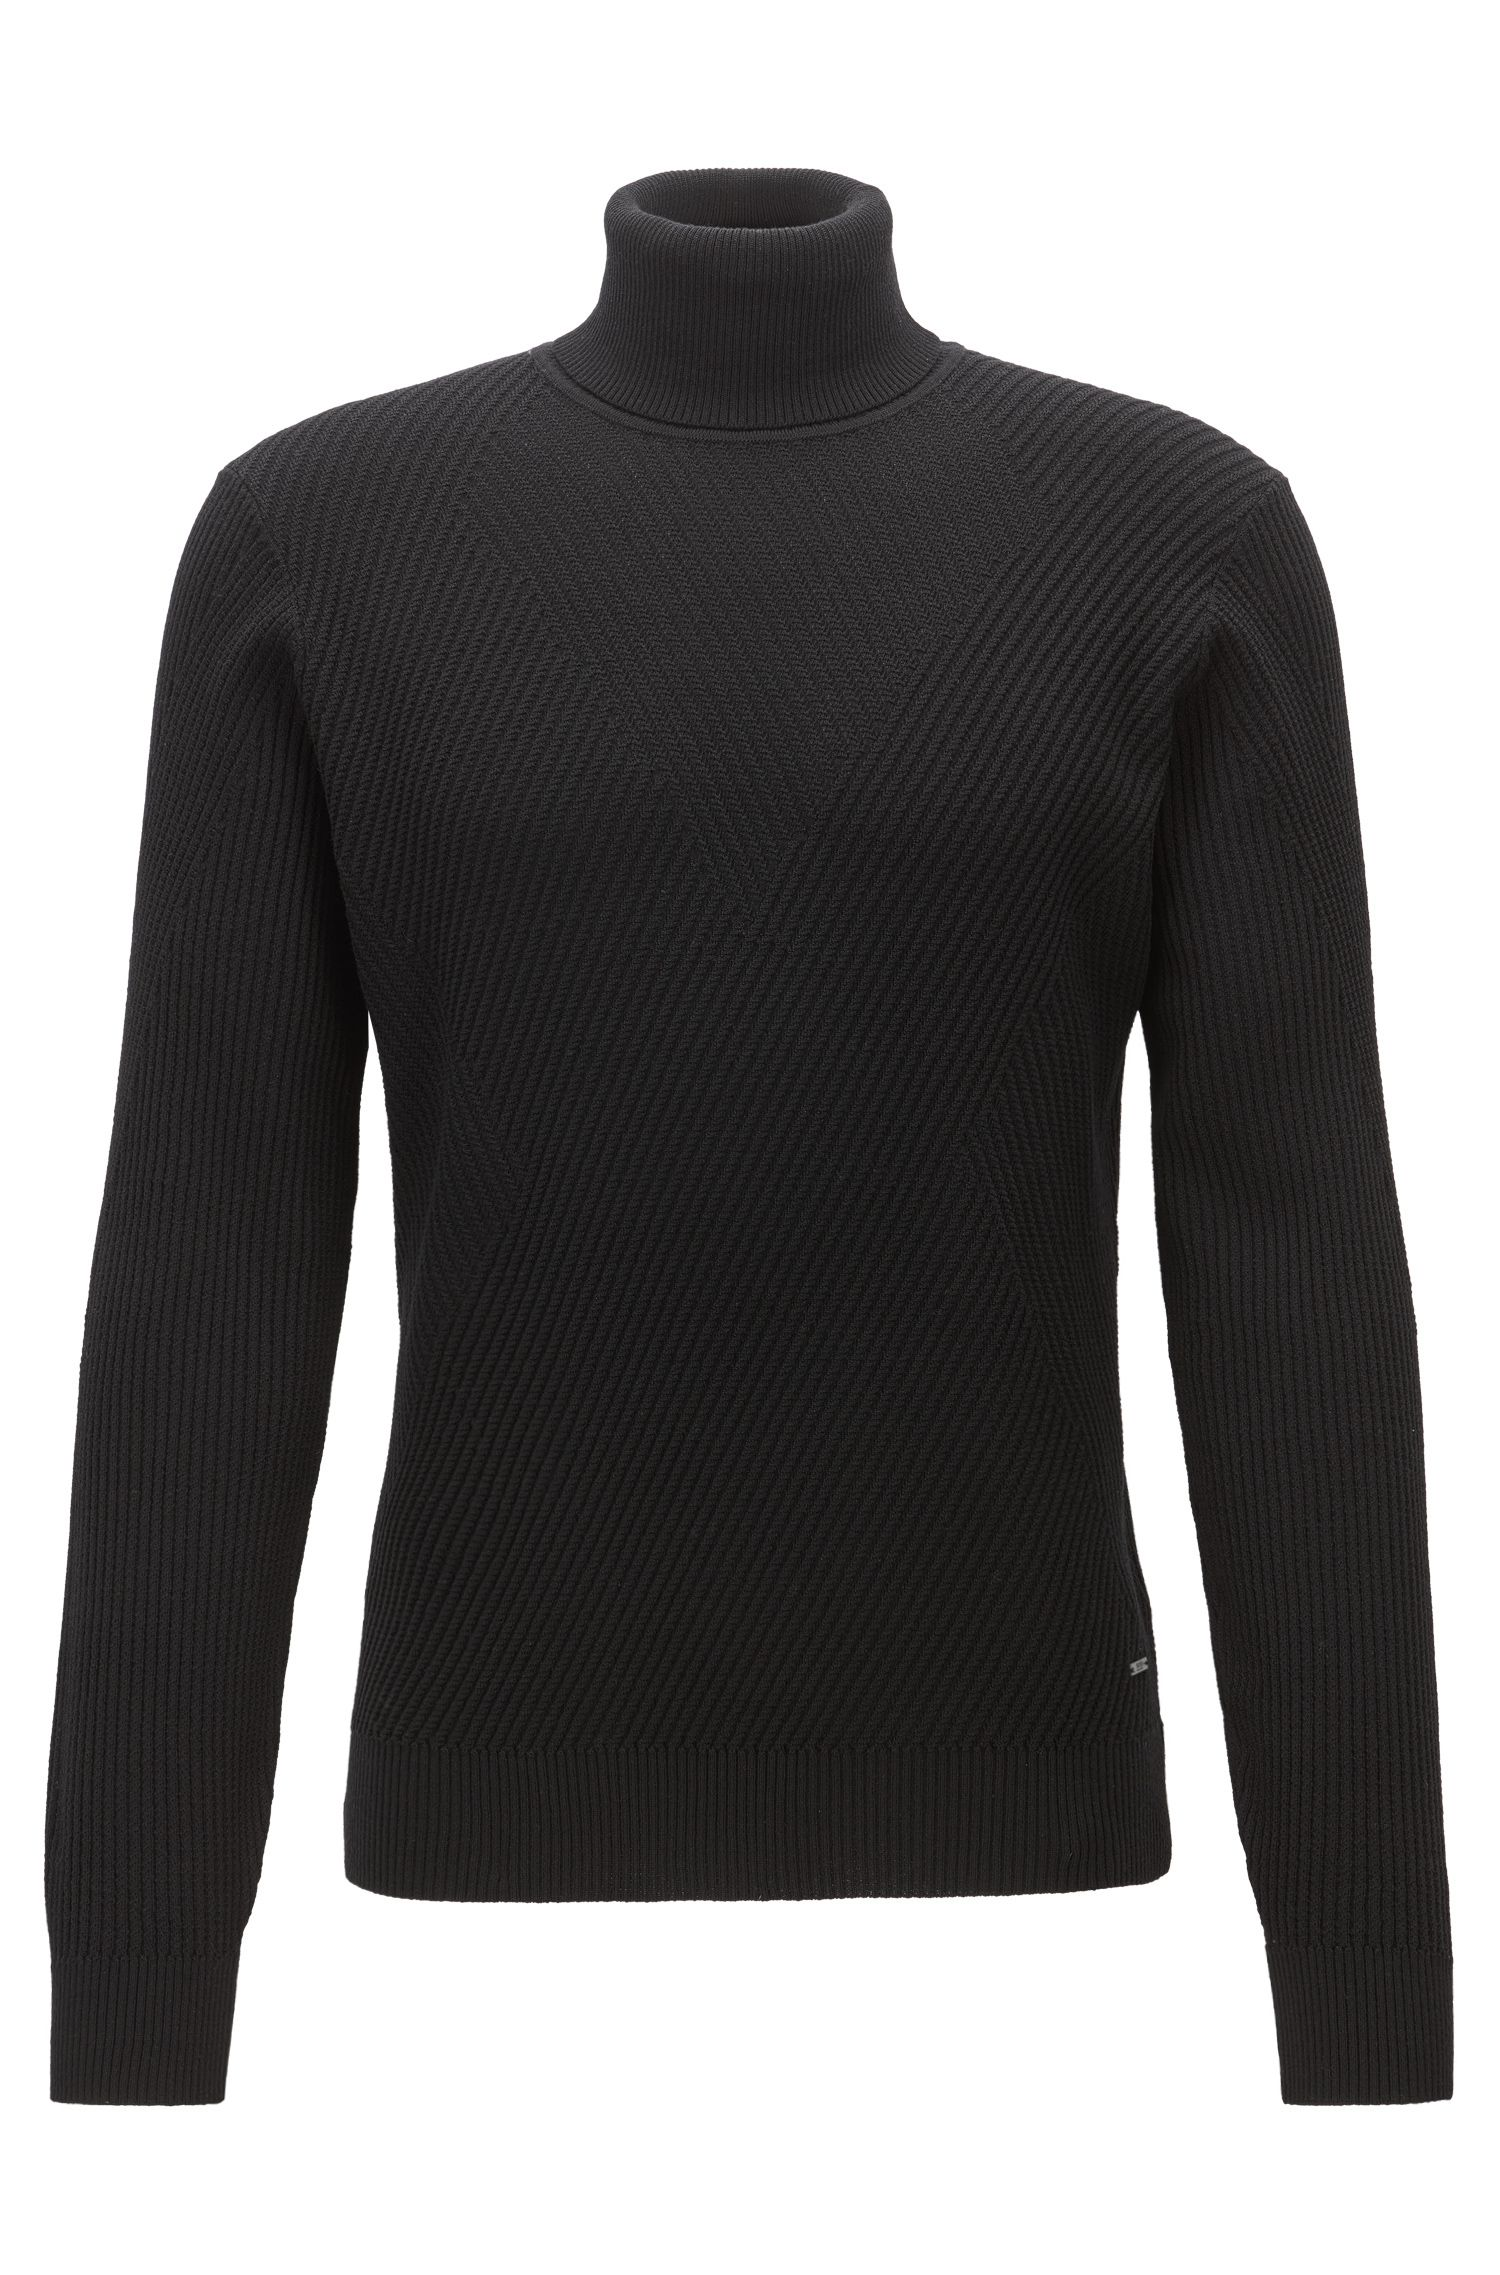 Lightweight turtle-neck sweater in a knitted structure contrast